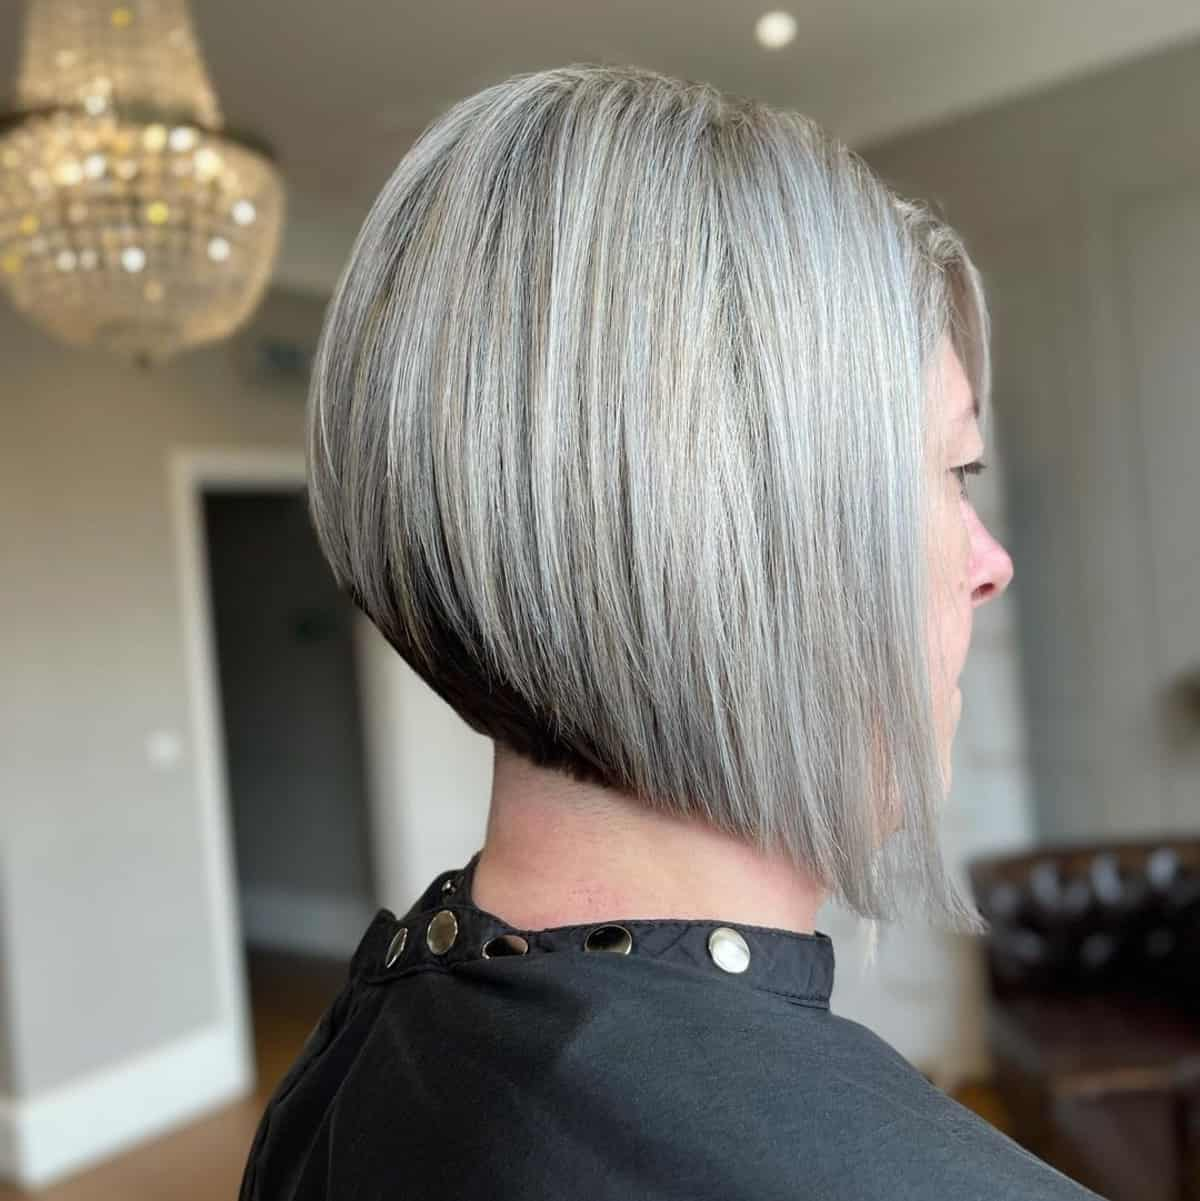 50 Hot Hairstyles For Women Over 50 To Look Younger In 2019